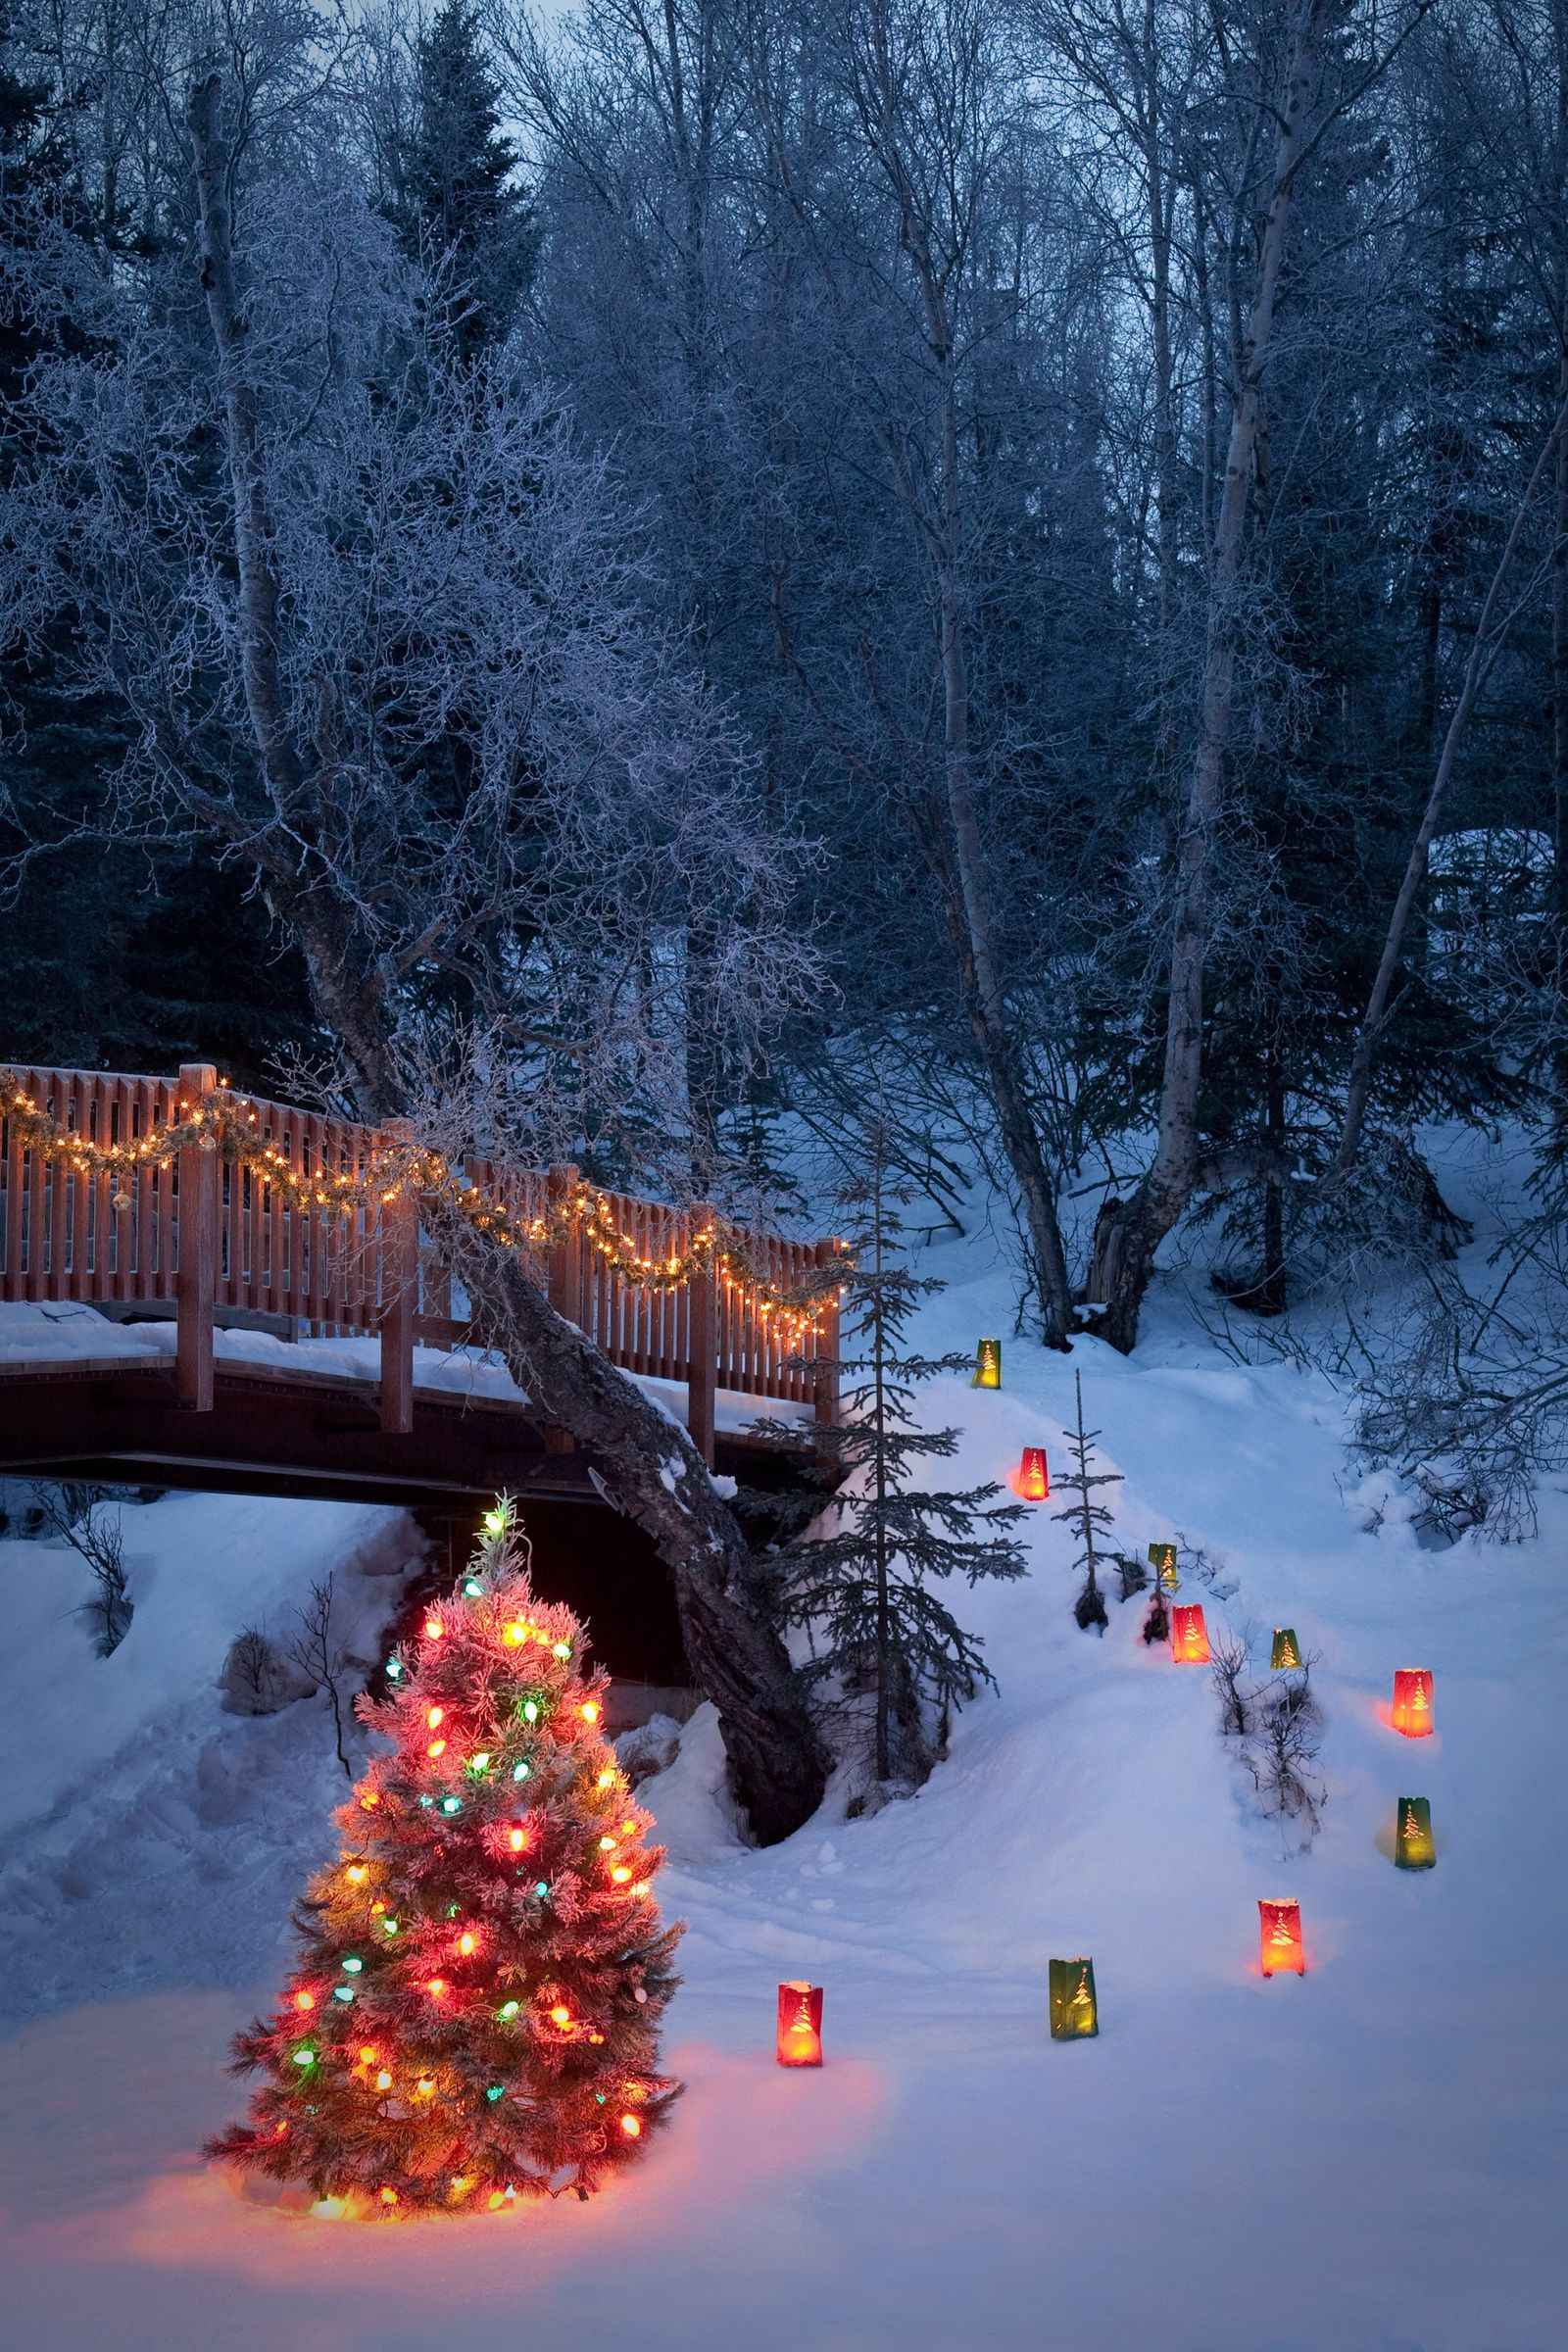 37 Fun Christmas Activities You Absolutely Must Add to Your Bucket List #ceremonyideas